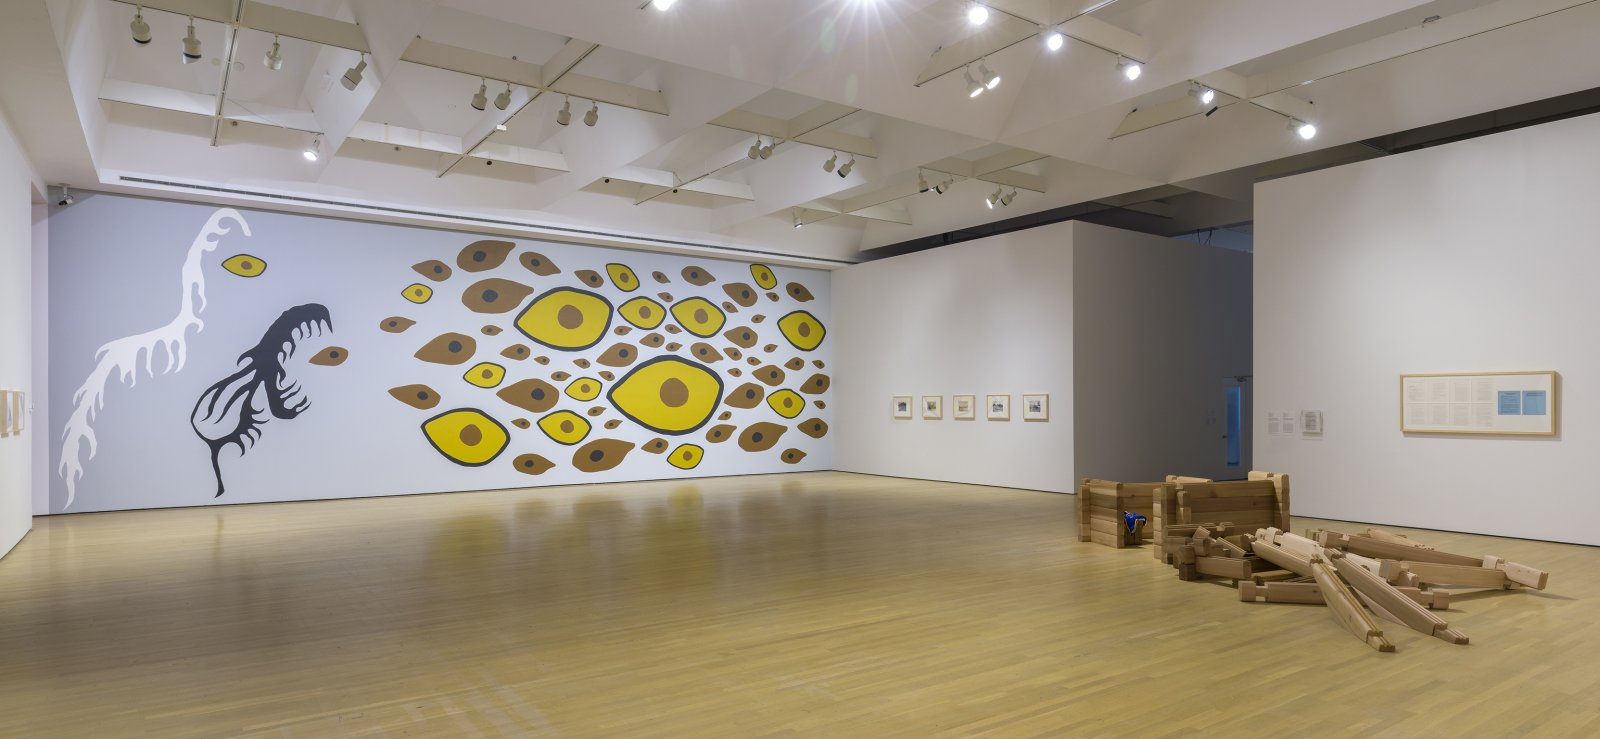 Duane Linklater, Earth Mother Hair, Indian Hair, and Earth Mother Eyes, Indian Eyes, Animal Eyes, 2017, paint on interior wall of the Musée d'art contemporain de Montréal, from a series of small paintings of eyes and hair based on a photo of Norval Morrisseau's Earth Mother and Her Children (1967), painting labour by Julie Ouellet, absence of the artist, dimensions variable. Installation view, In Search of Expo 67, Musée d'art contemporain de Montréal, 2017